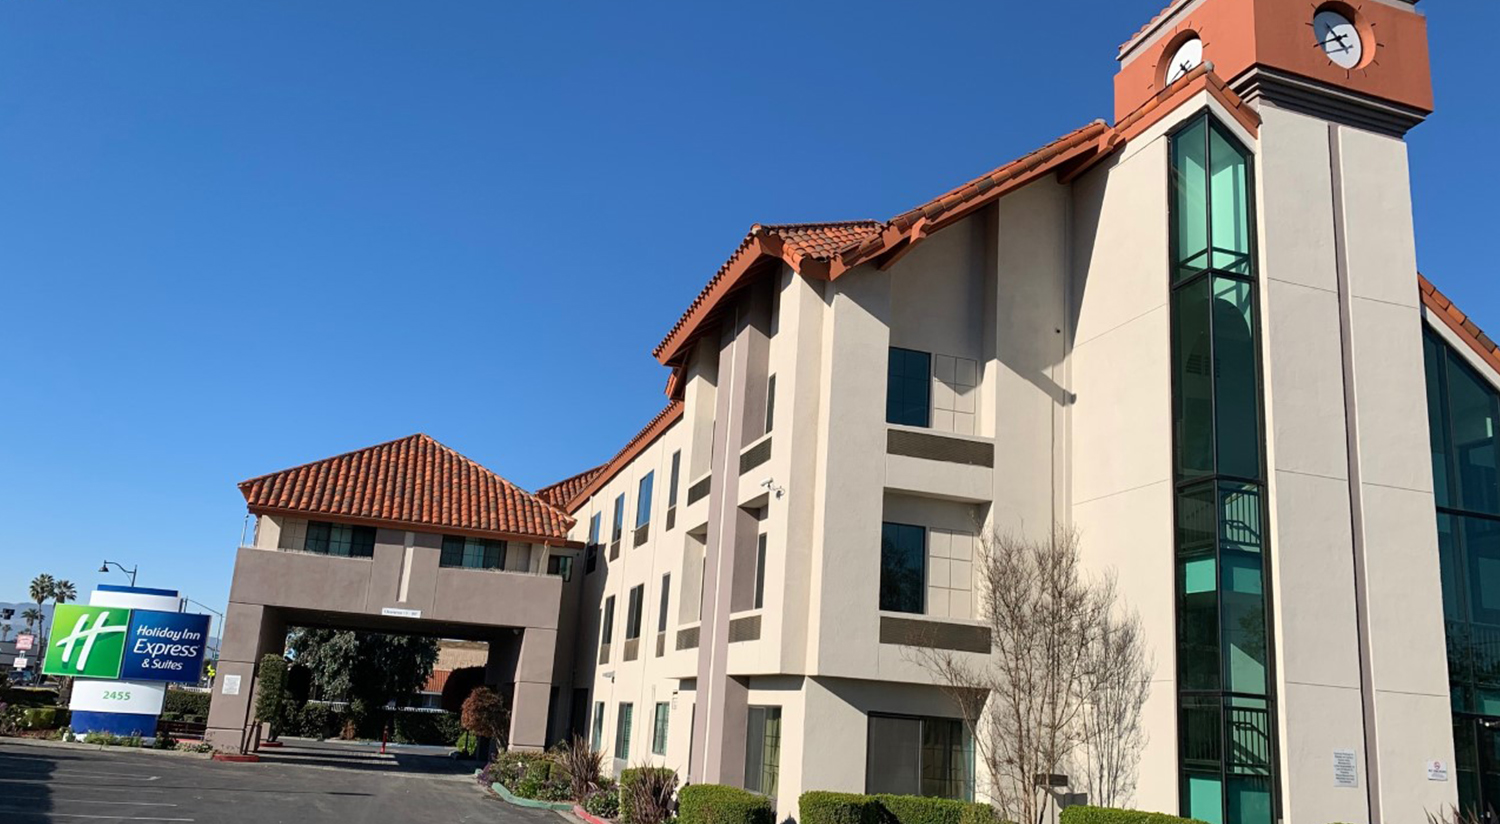 WELCOME TO THE HOLIDAY INN EXPRESS & SUITES HE PREMIER ALL-SUITE SANTA CLARA HOTEL